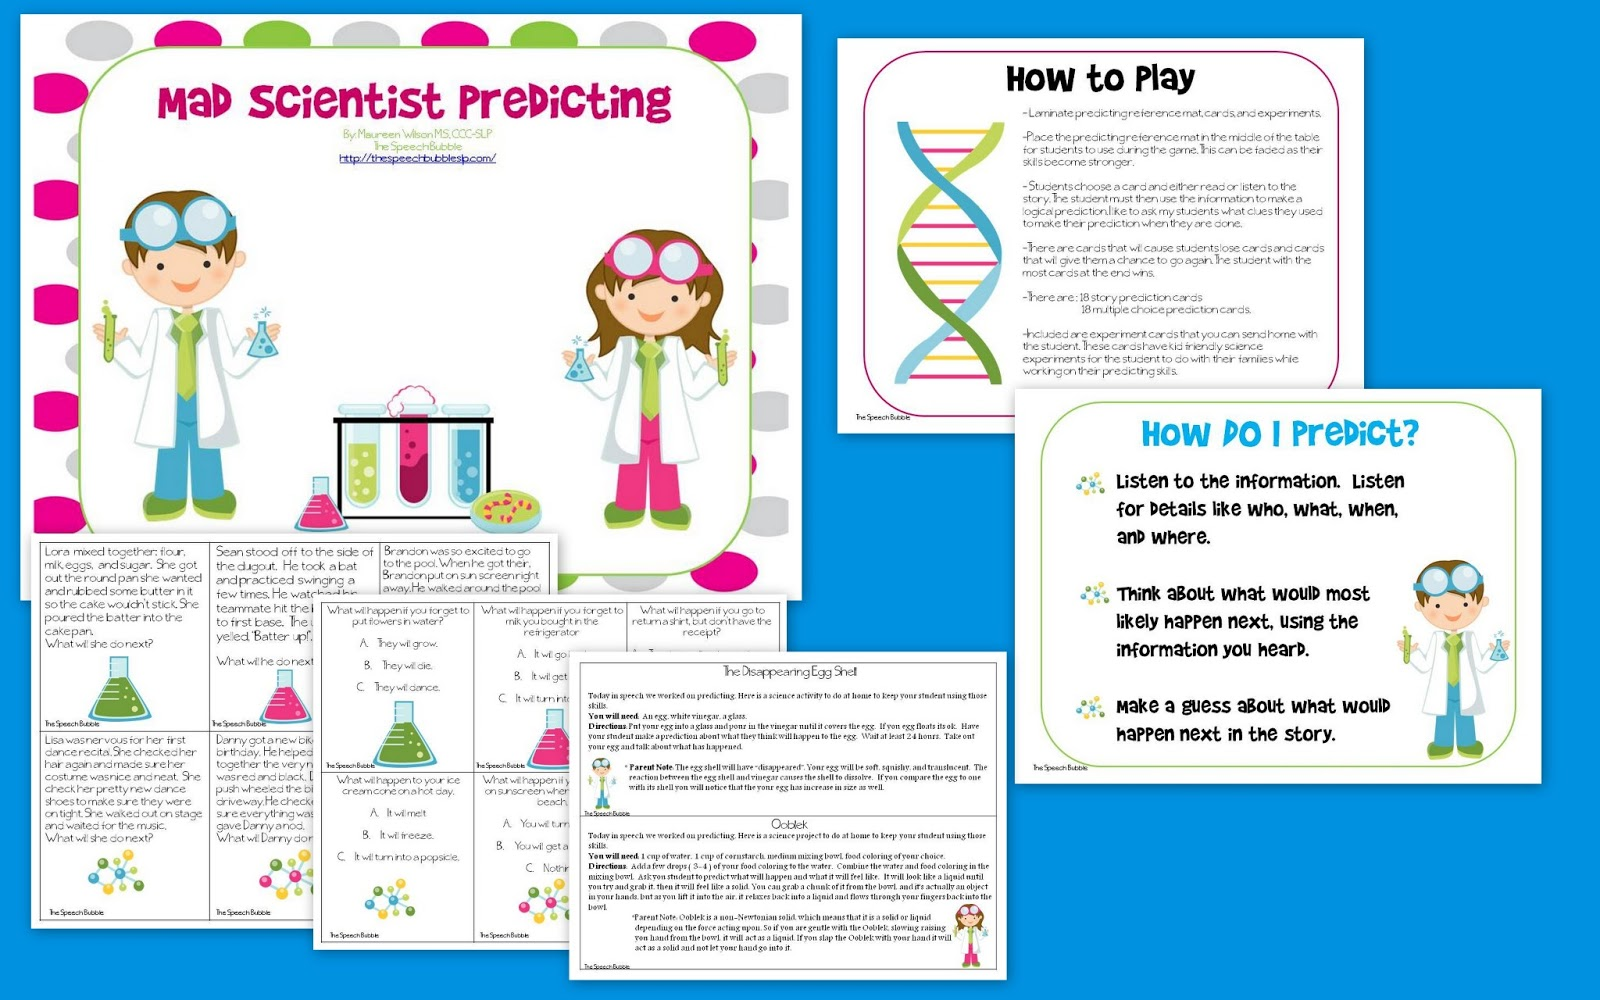 Lava lamp experiment worksheet - This Activity Has 18 Story Prediction Cards And 18 Multiple Choice Prediction Cards For A Total Of 36 Predicting Opportunities